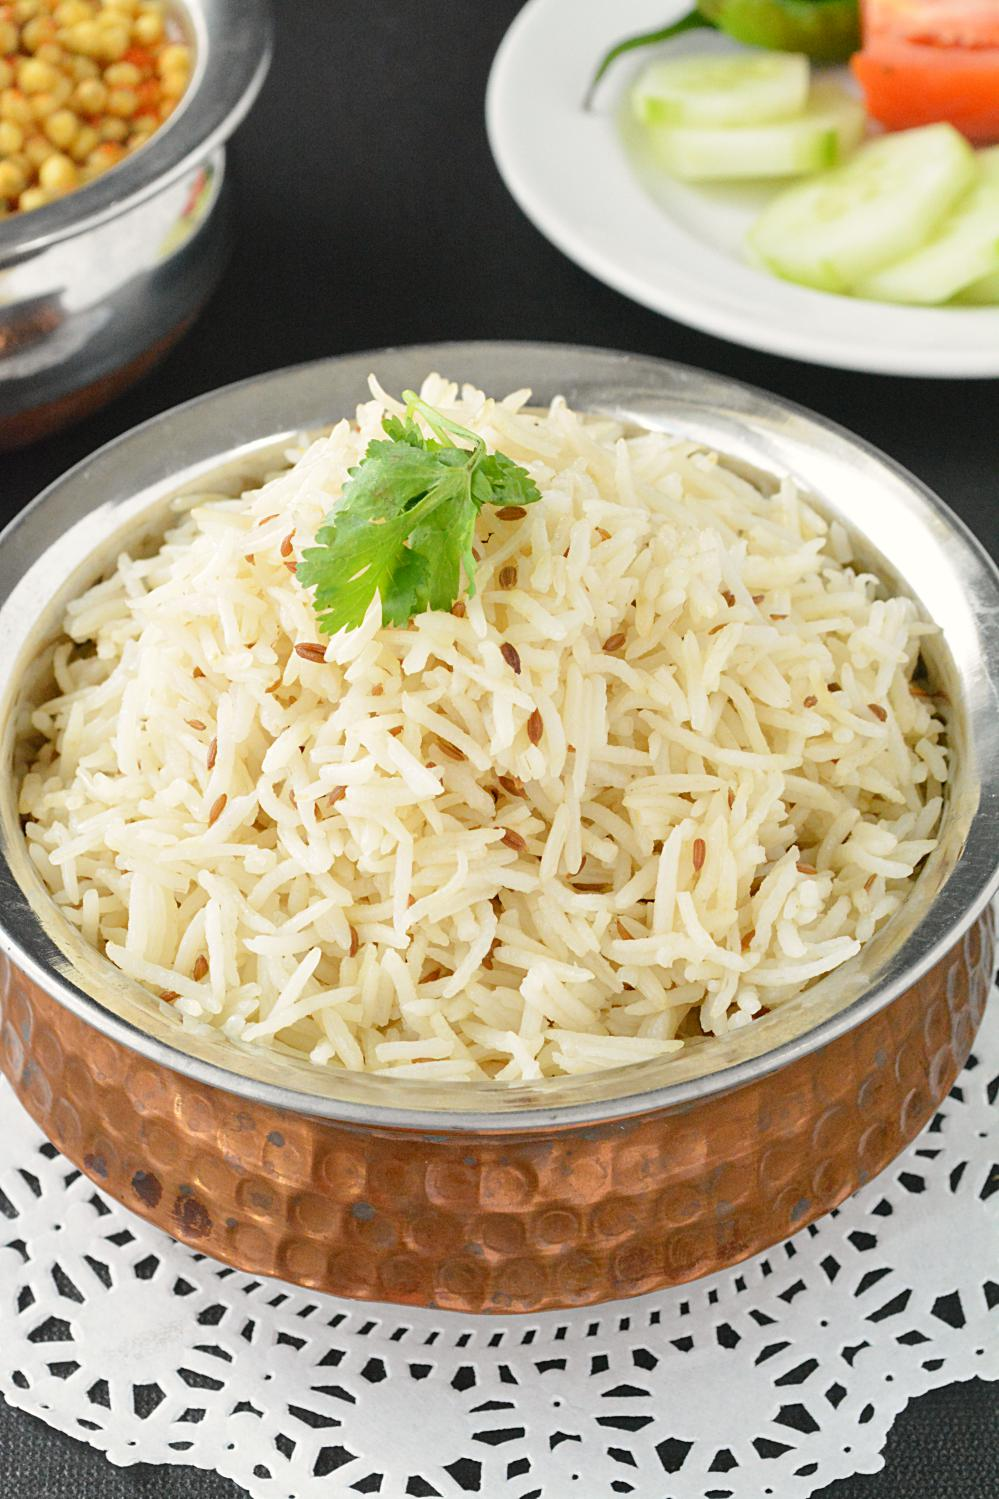 How to cook starch free rice